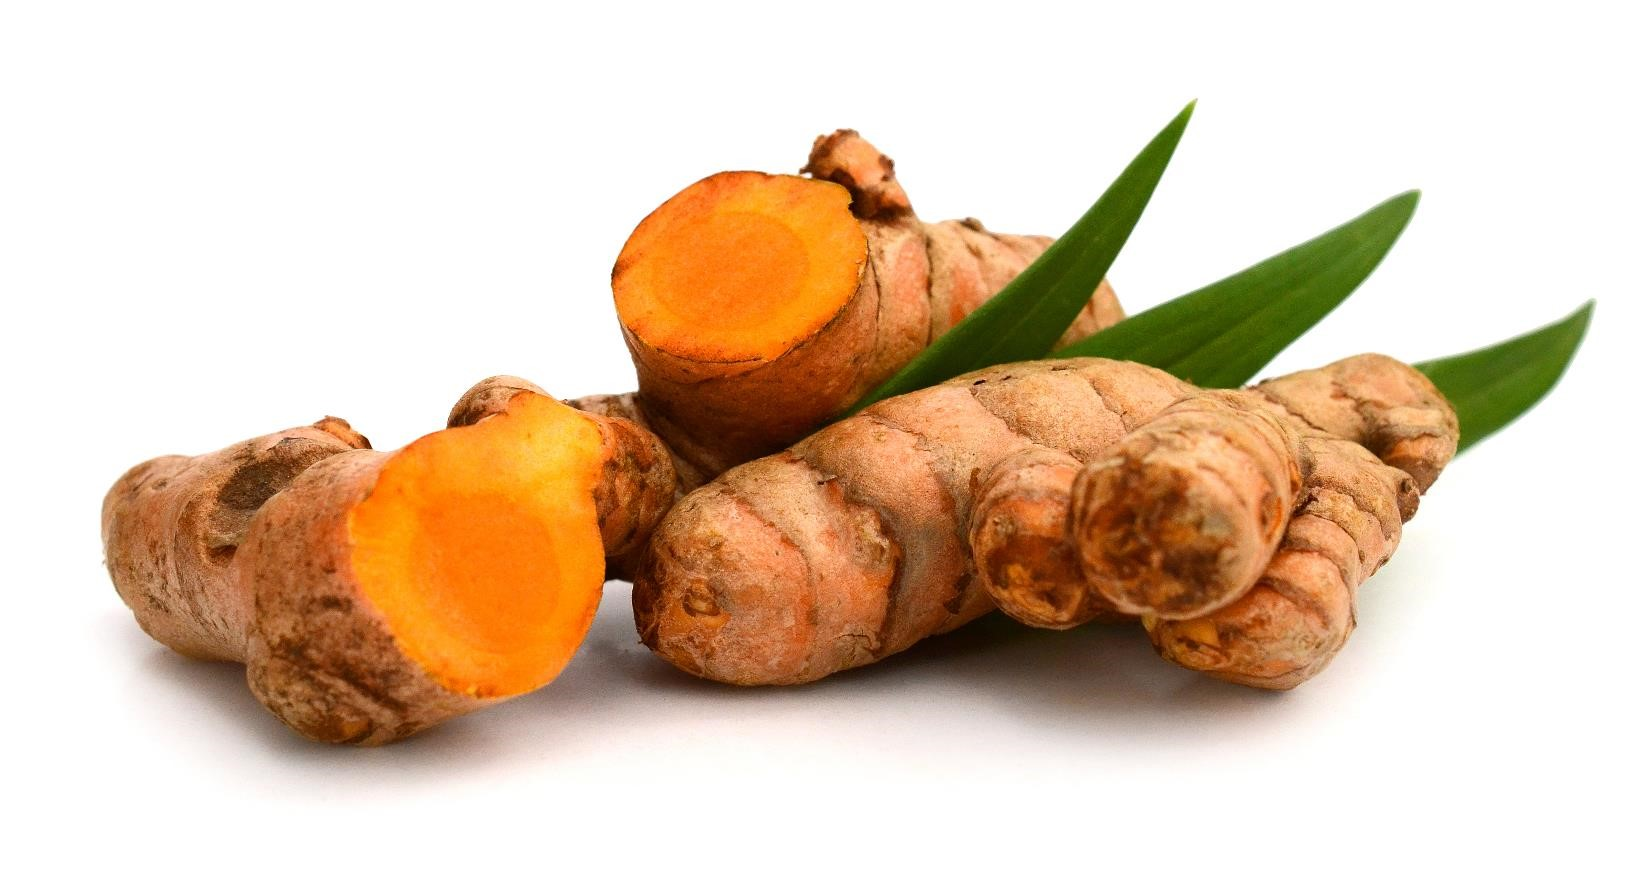 FIND OUT MORE ABOUT TURMERIC